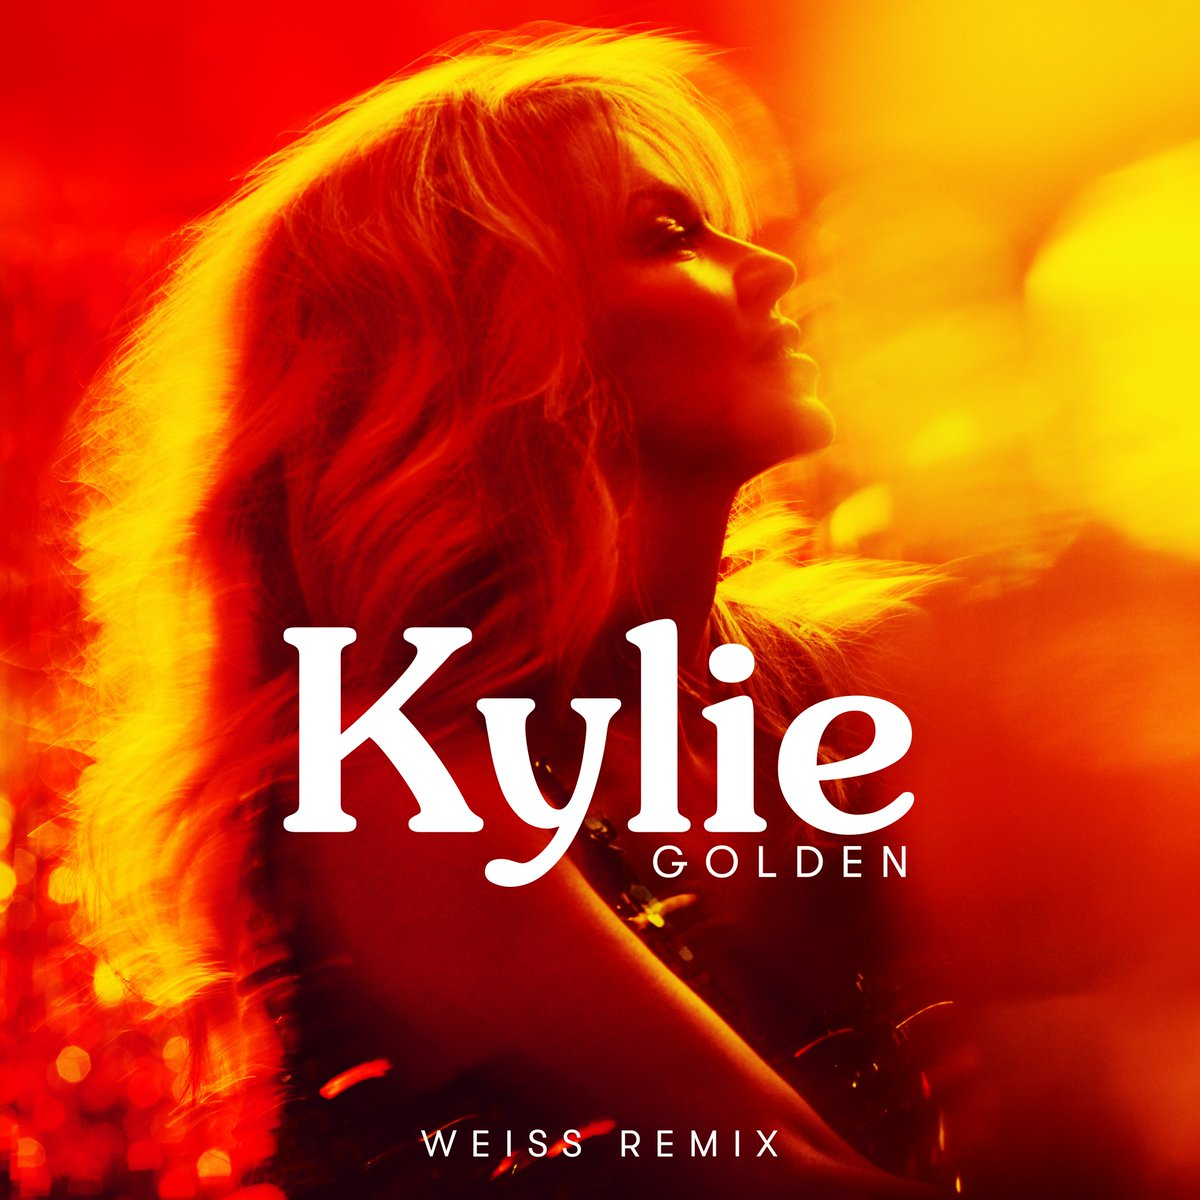 Something for the weekend... A brand new Golden remix from @Weiss_UK!! Listen now ⭐️???? https://t.co/aXaIwjg4yR https://t.co/nKLDpL5JUD